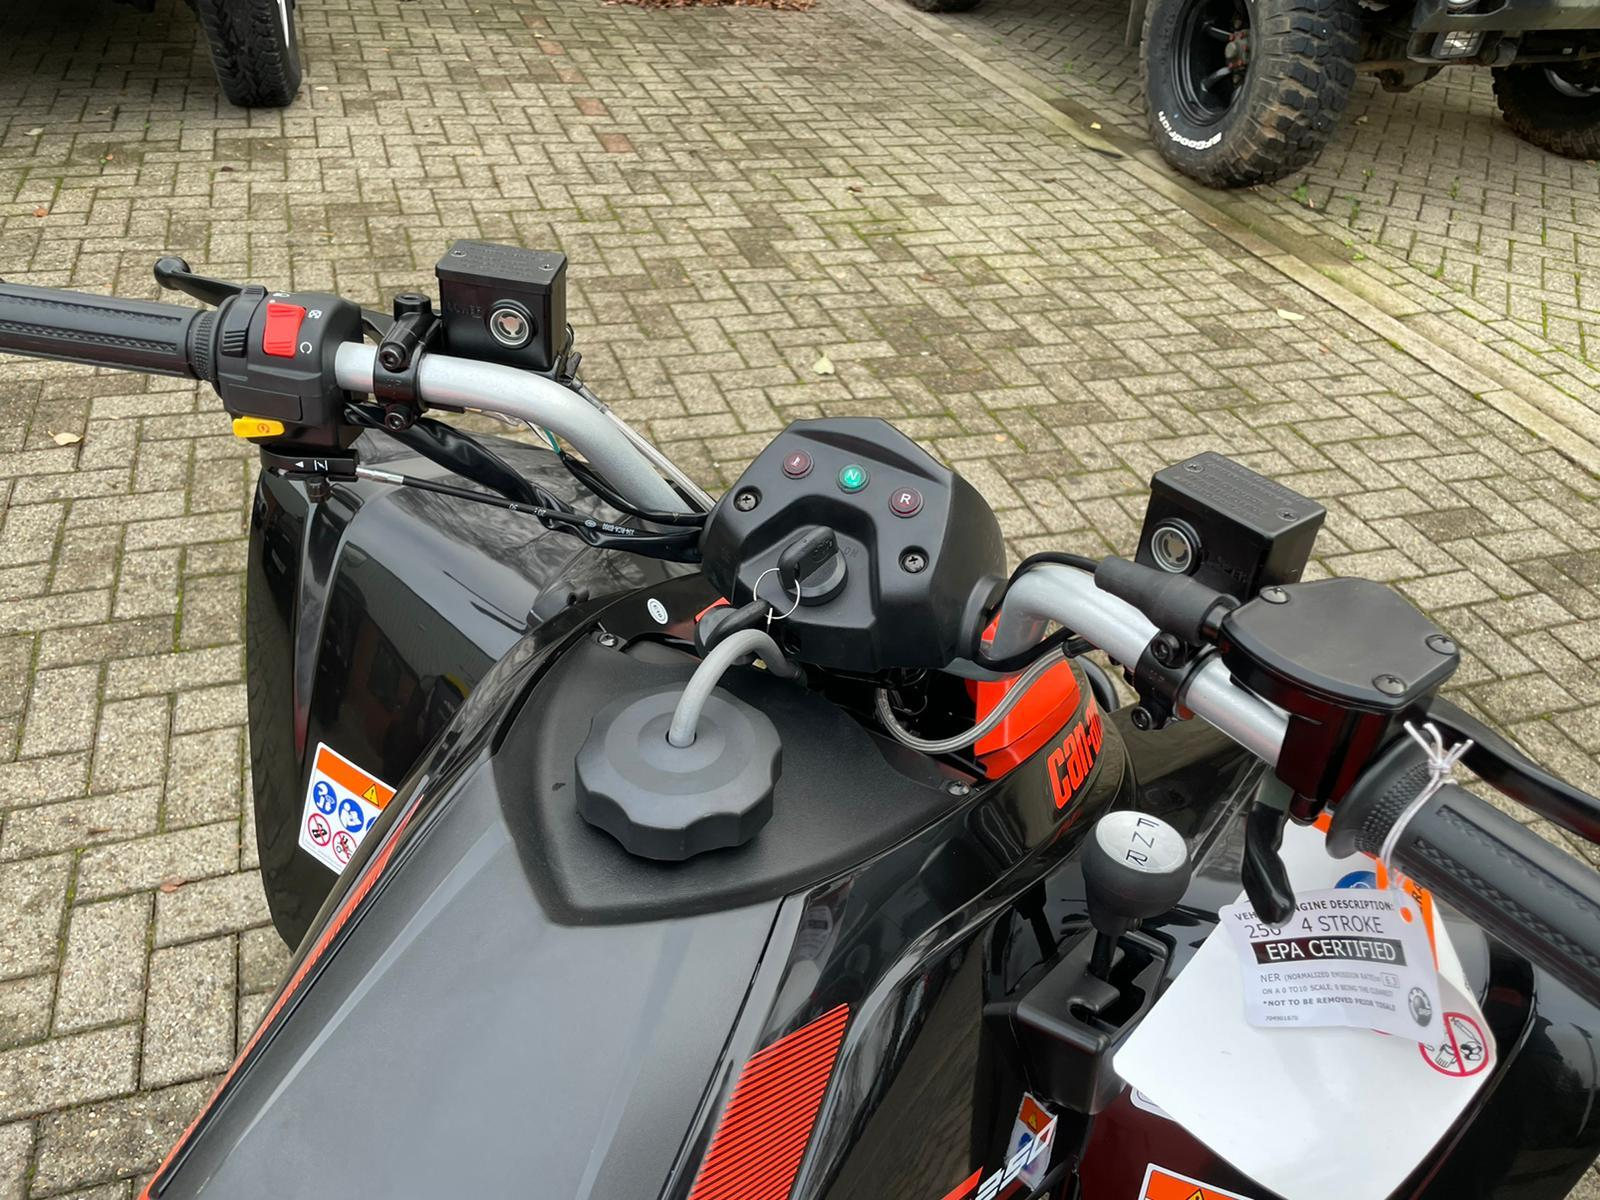 2021 DS 250 's gallery image